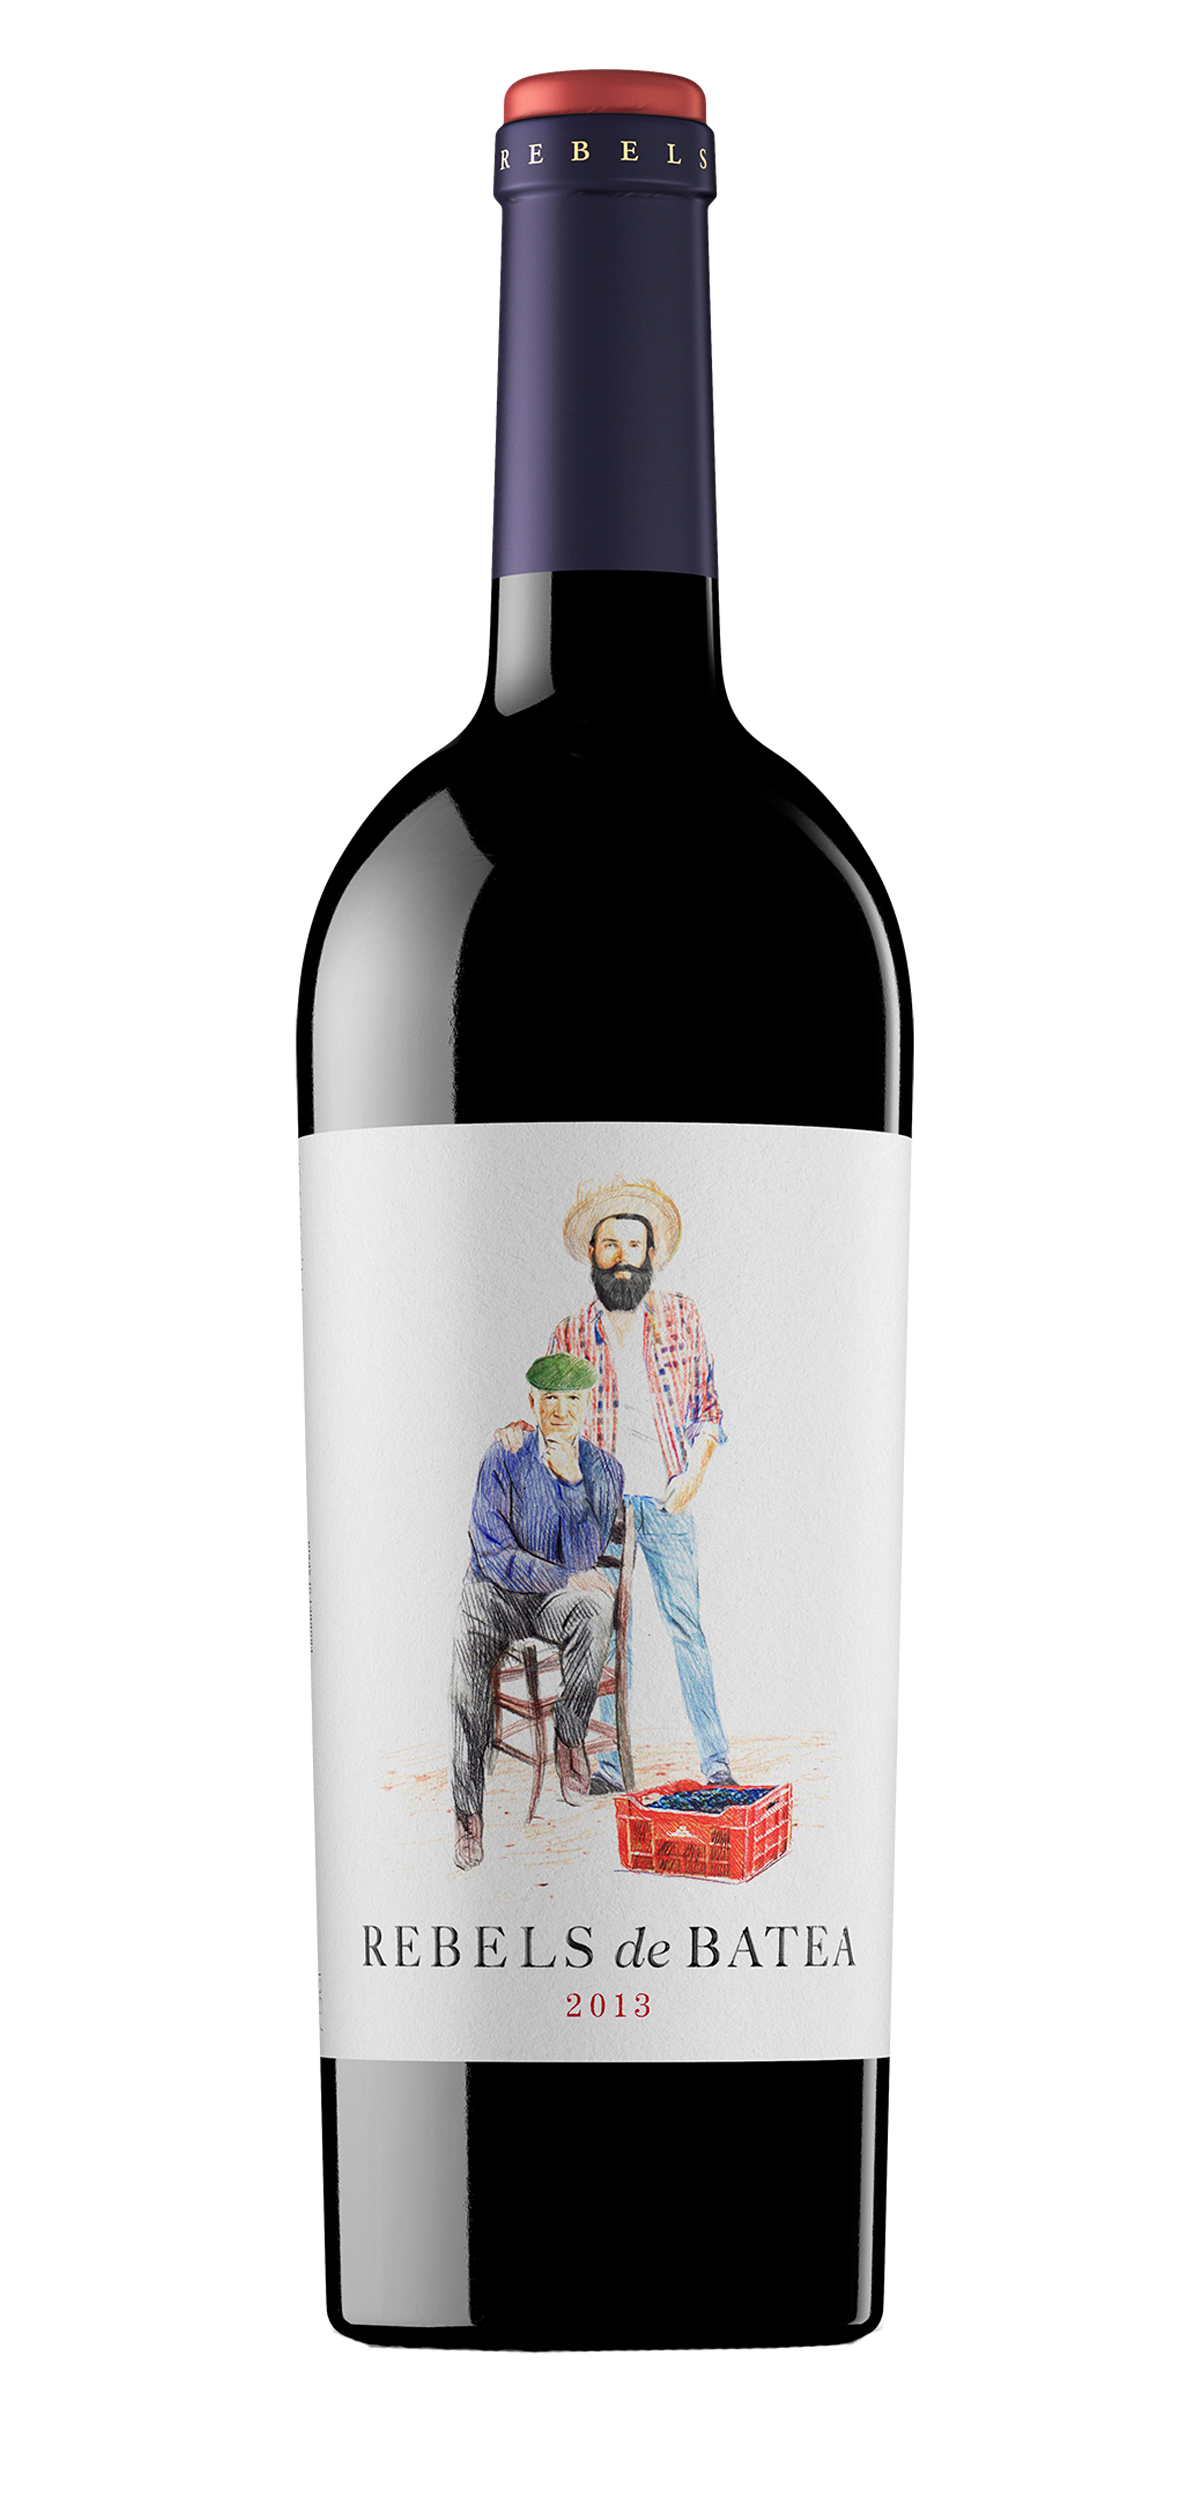 Rebels de Batea El Tinto wine bottle design